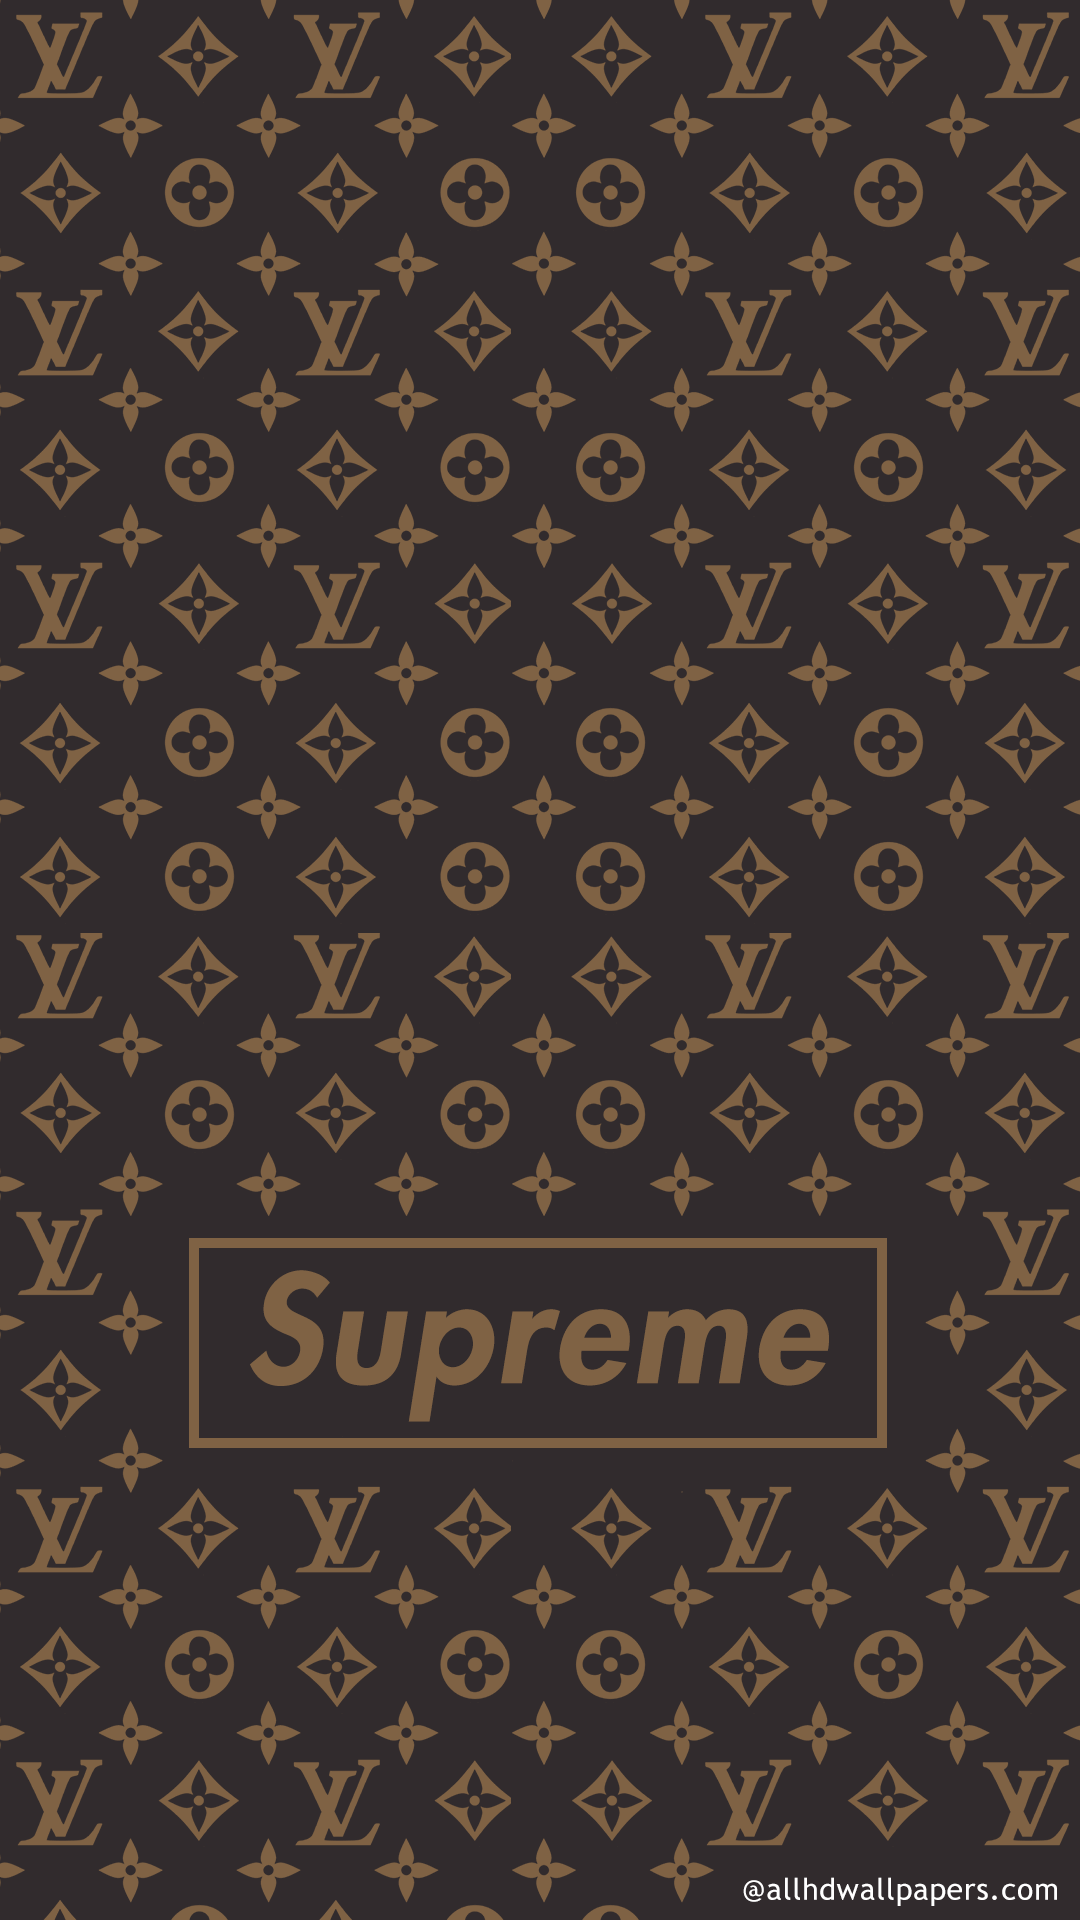 1080x1920 70+ Supreme Wallpapers in 4K - AllHDWallpapers | Supreme ...